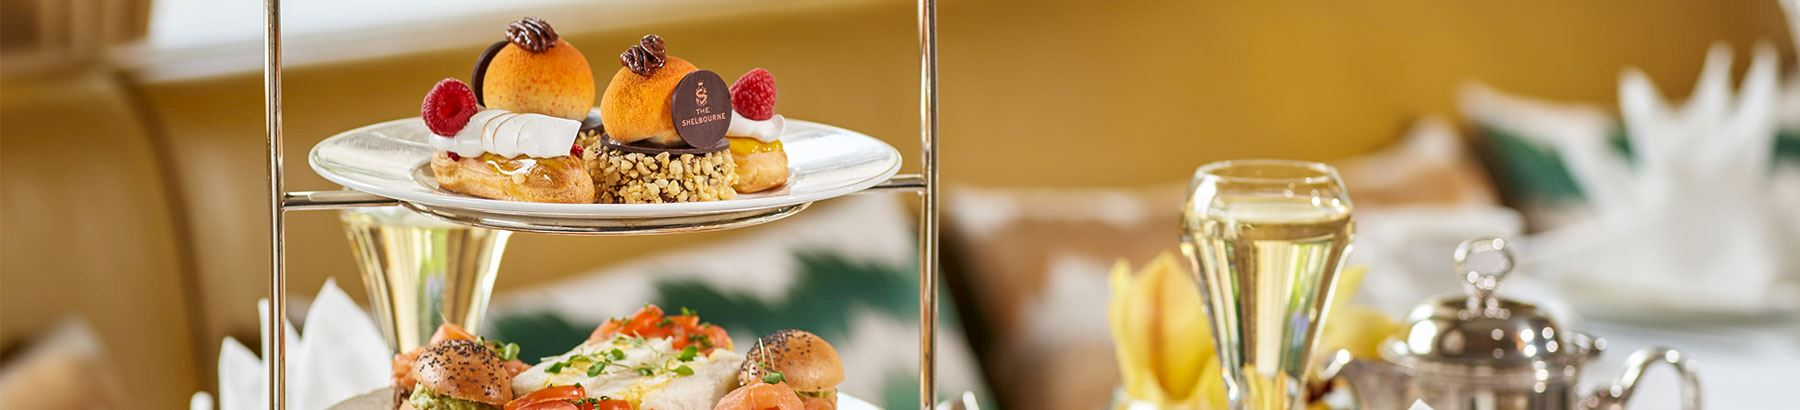 The Shelbourne Voucher Dublin Afternoon Tea